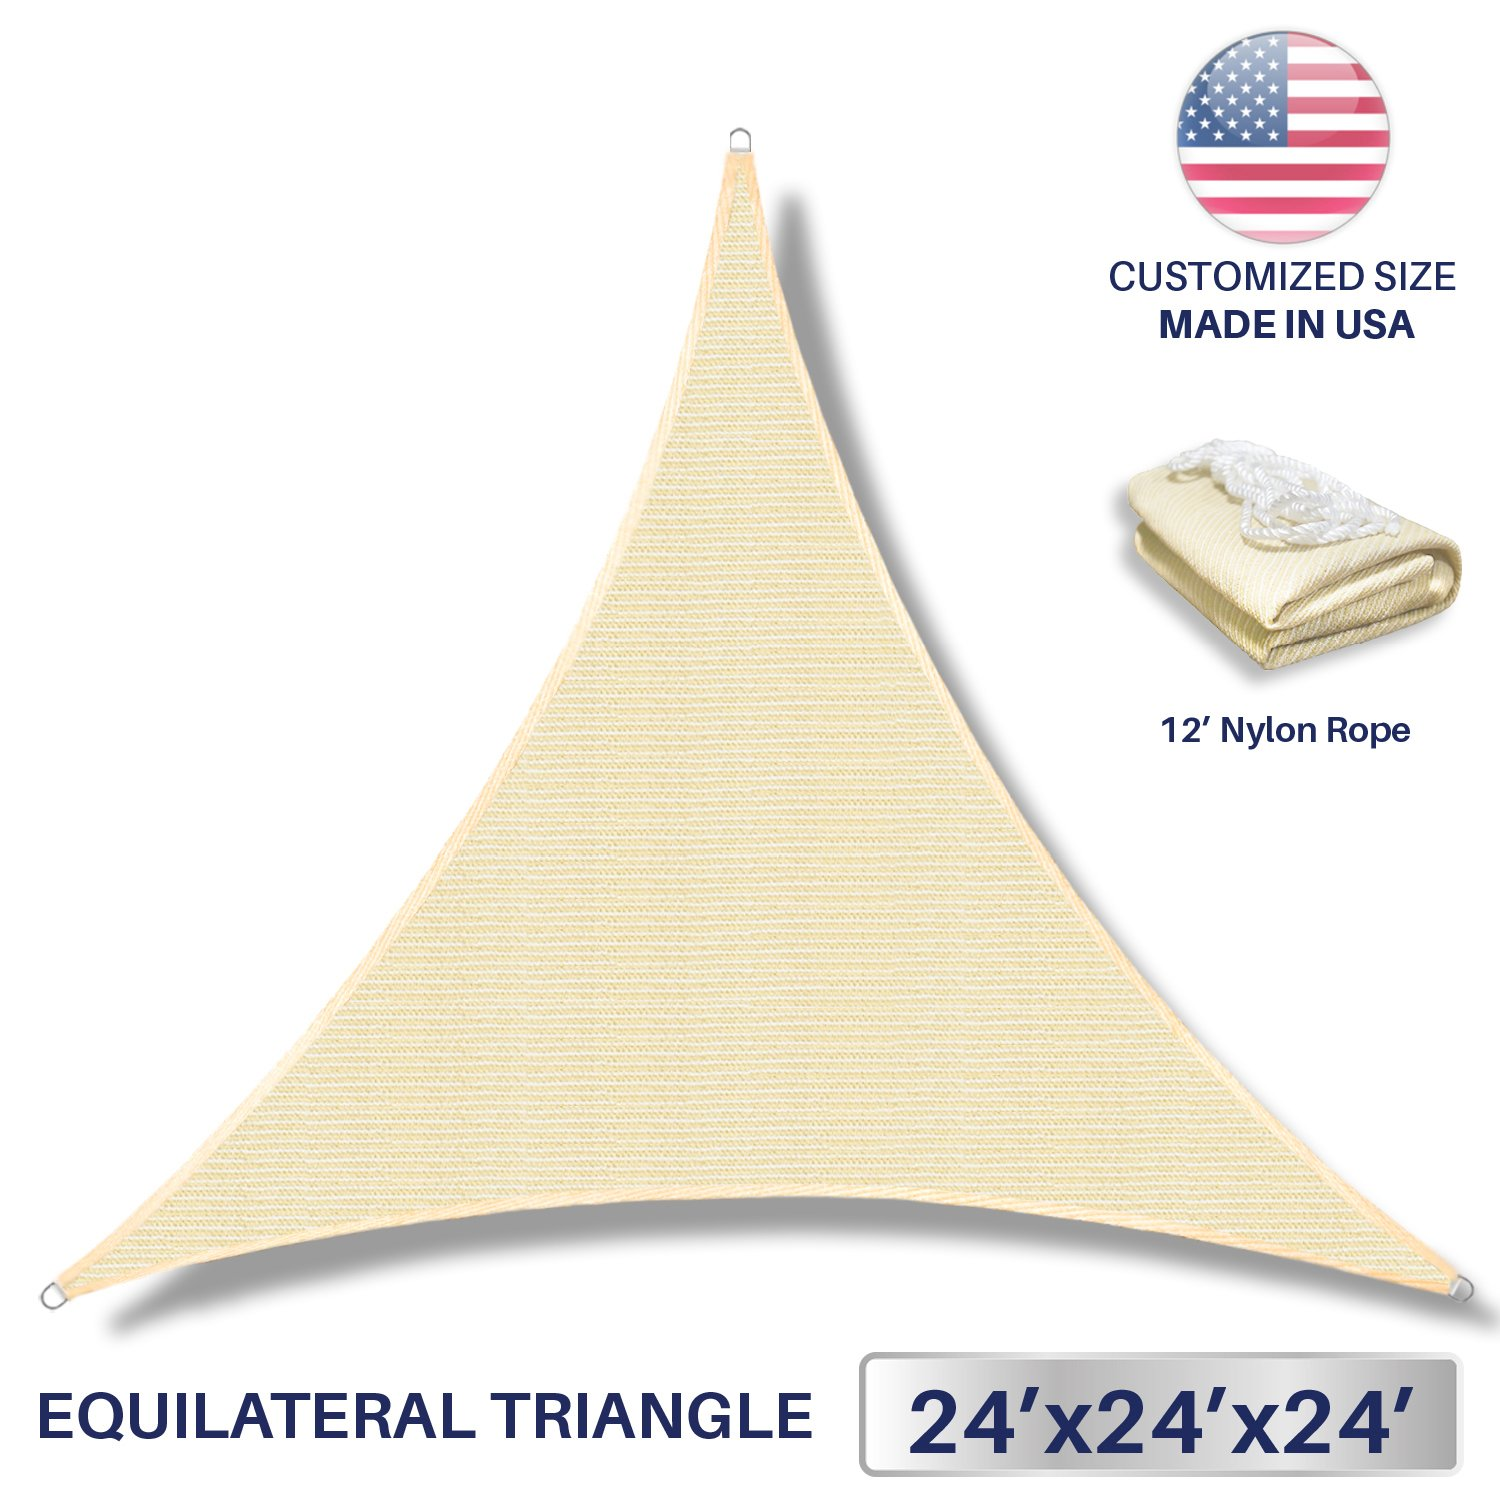 24' x 24' x 24' Sun Shade Sail UV Block Fabric Canopy in Beige Sand Triangle for Patio Garden Patio Customized Sizes Available (3 Year Warranty)